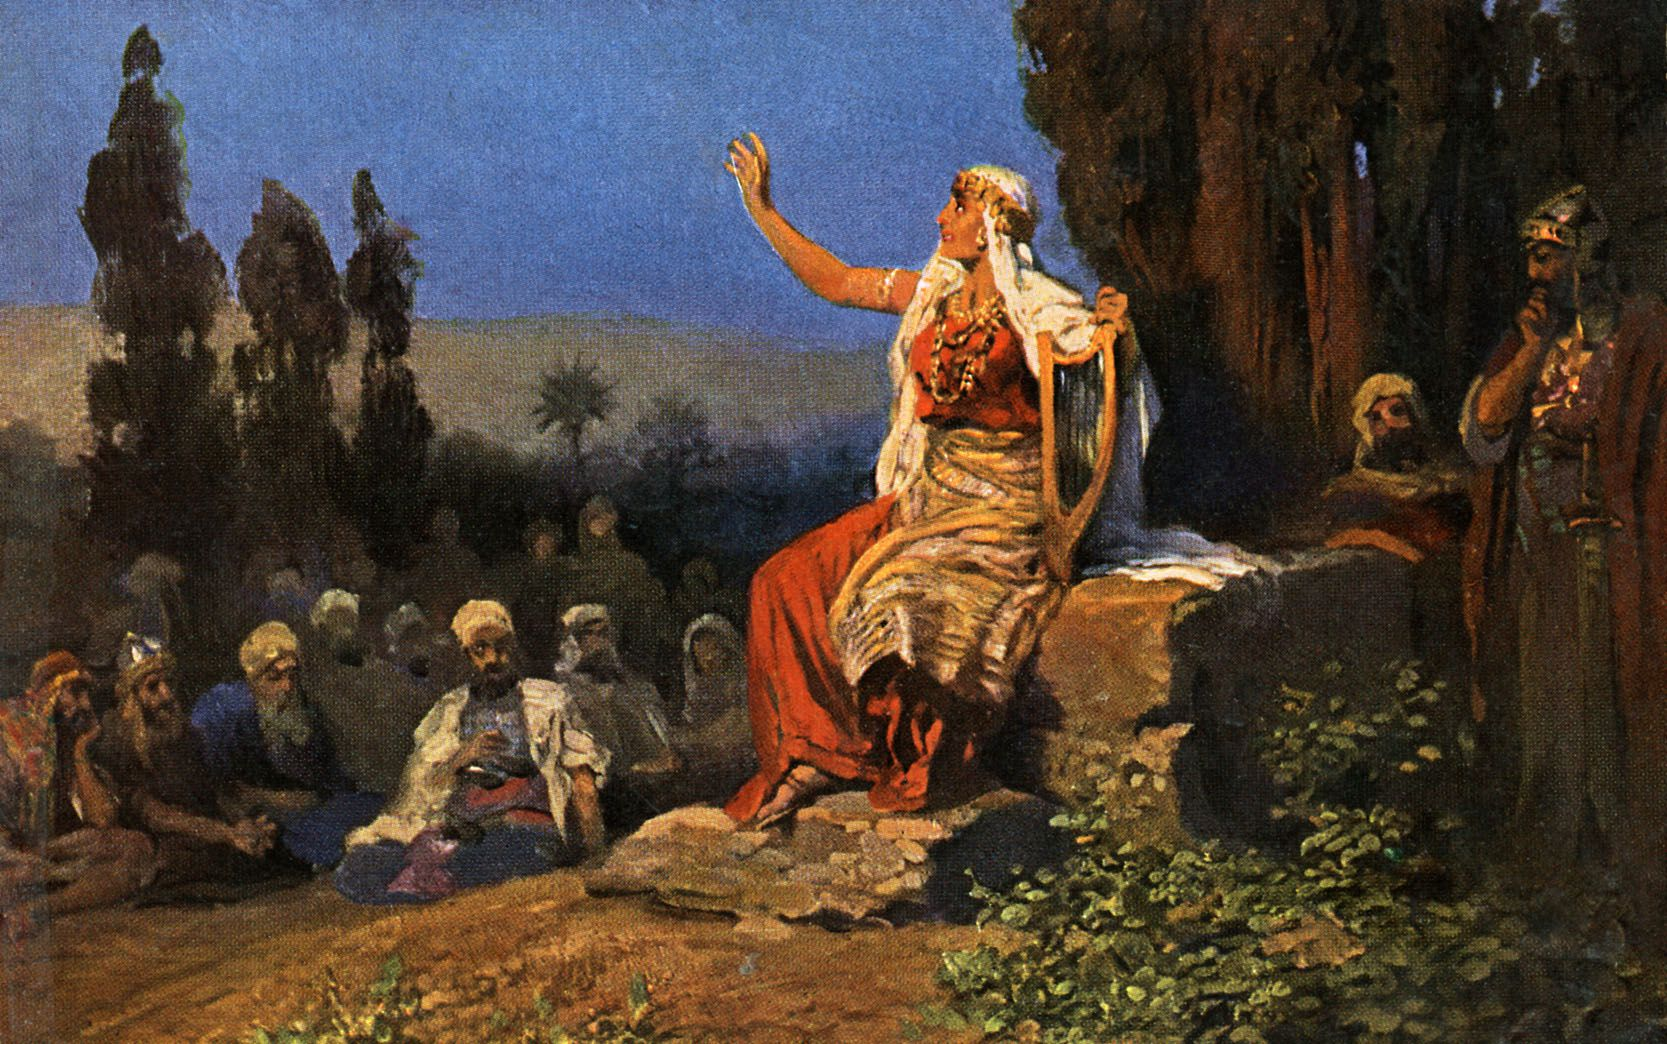 20 influential women of the bible who made a difference